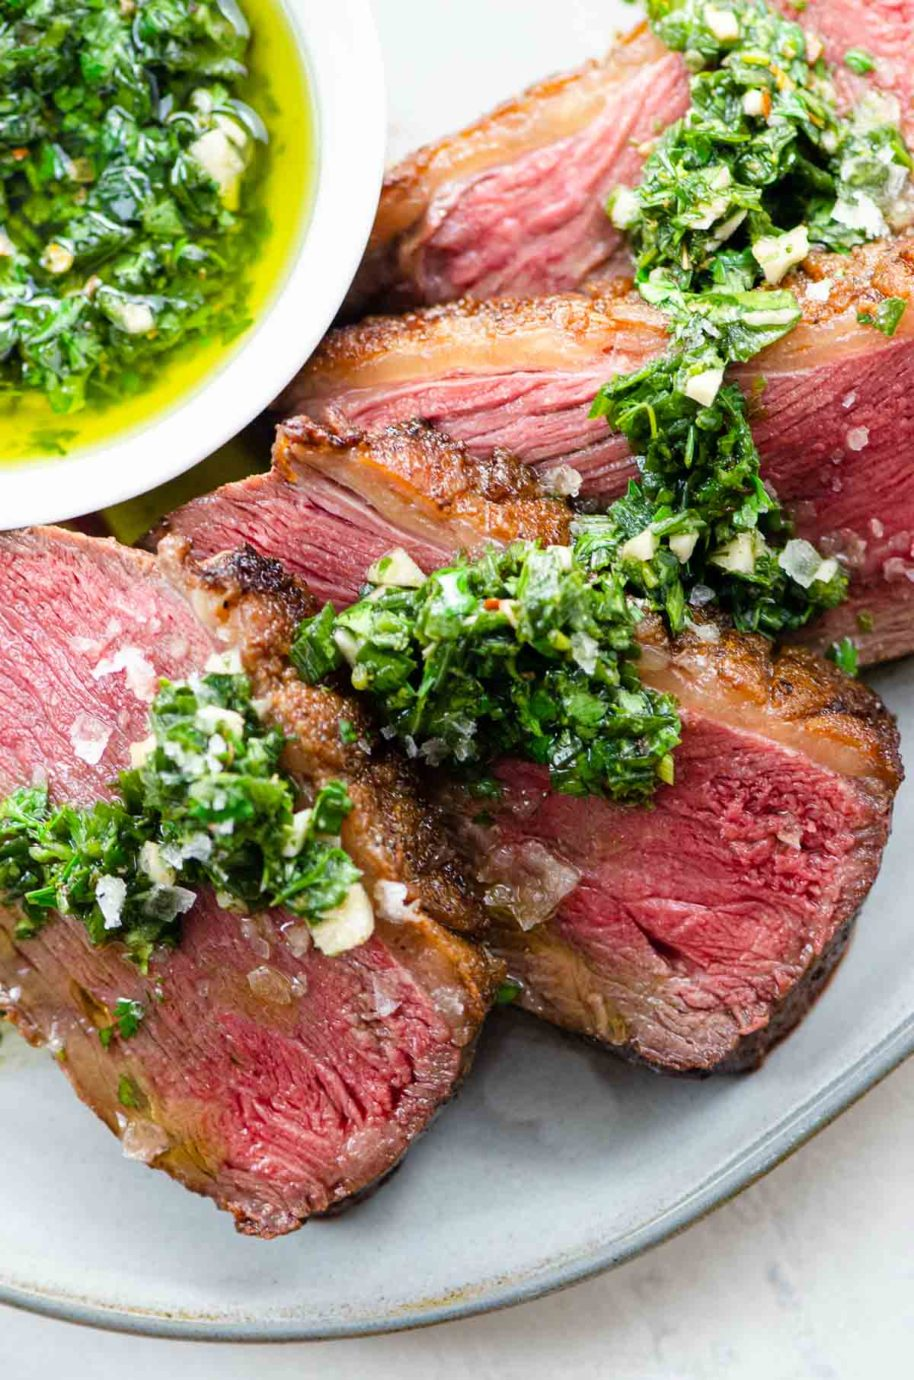 sliced culotte steak / sirloin cap / picanha with chimichurri